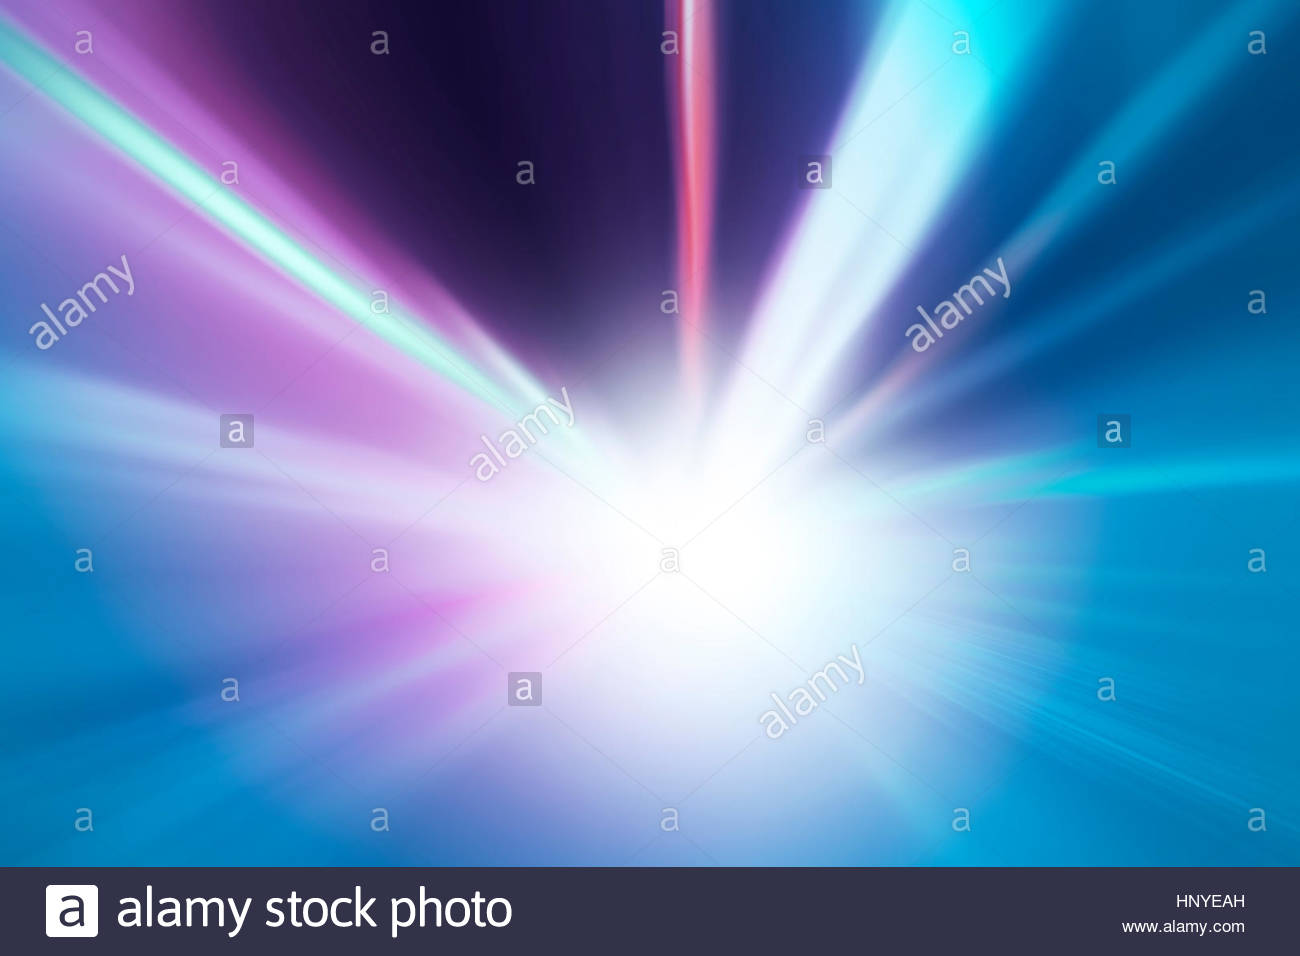 Abstract tunnel bright color lights acceleration speed motion blur. Motion blur visualizies the speed and dynamics. - Stock Image